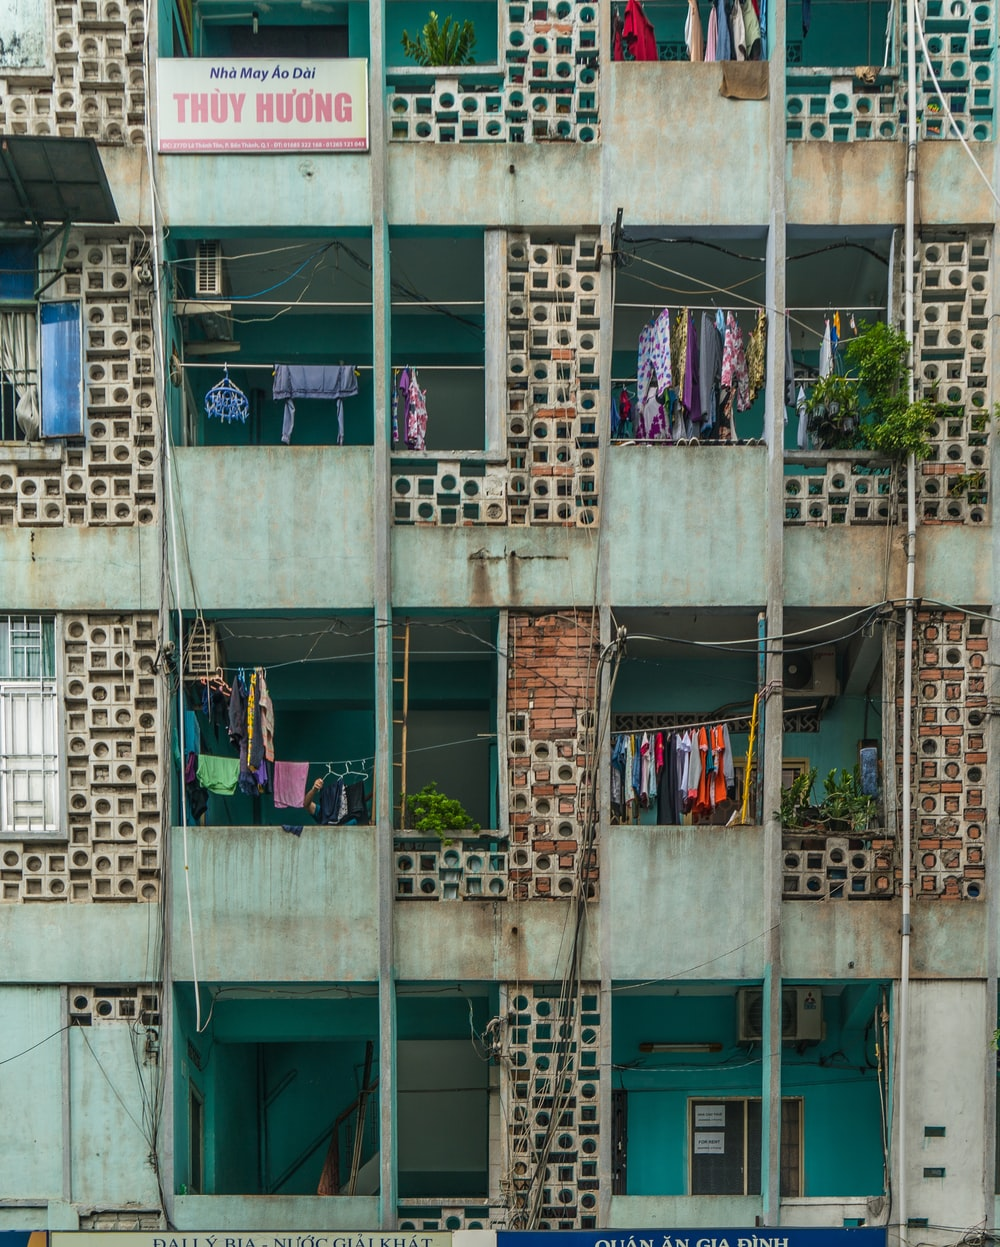 clothes hanged from apartment-style building